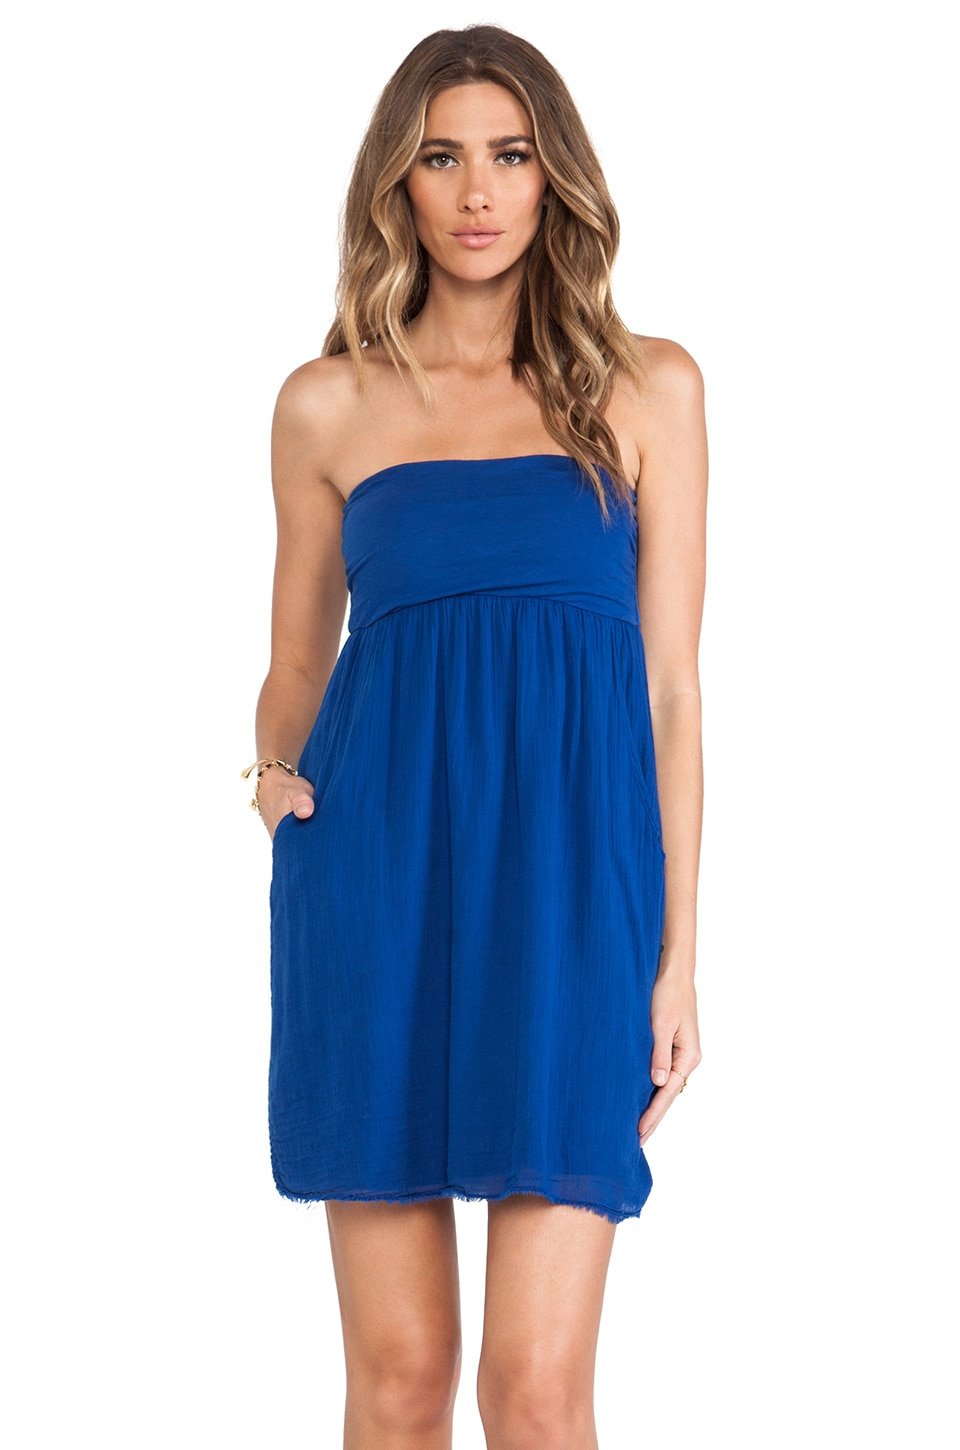 Velvet by Graham & Spencer Hayzelle Sheer Jersey Dress in Blueberry